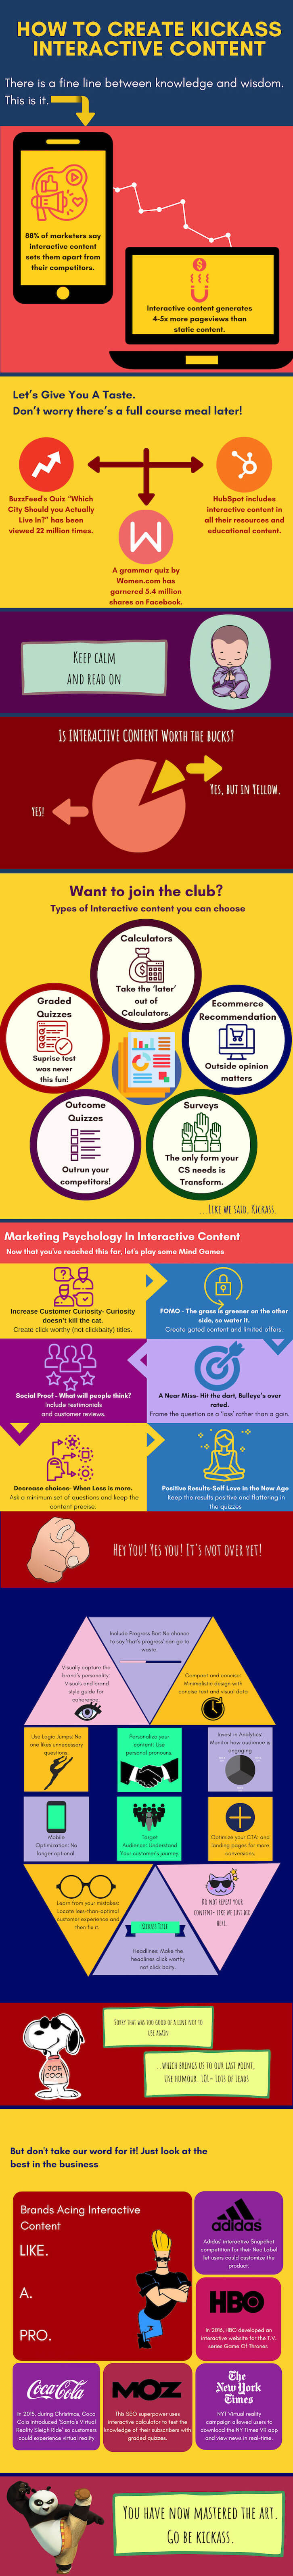 How to Create Kickass Interactive Content [Infographic]